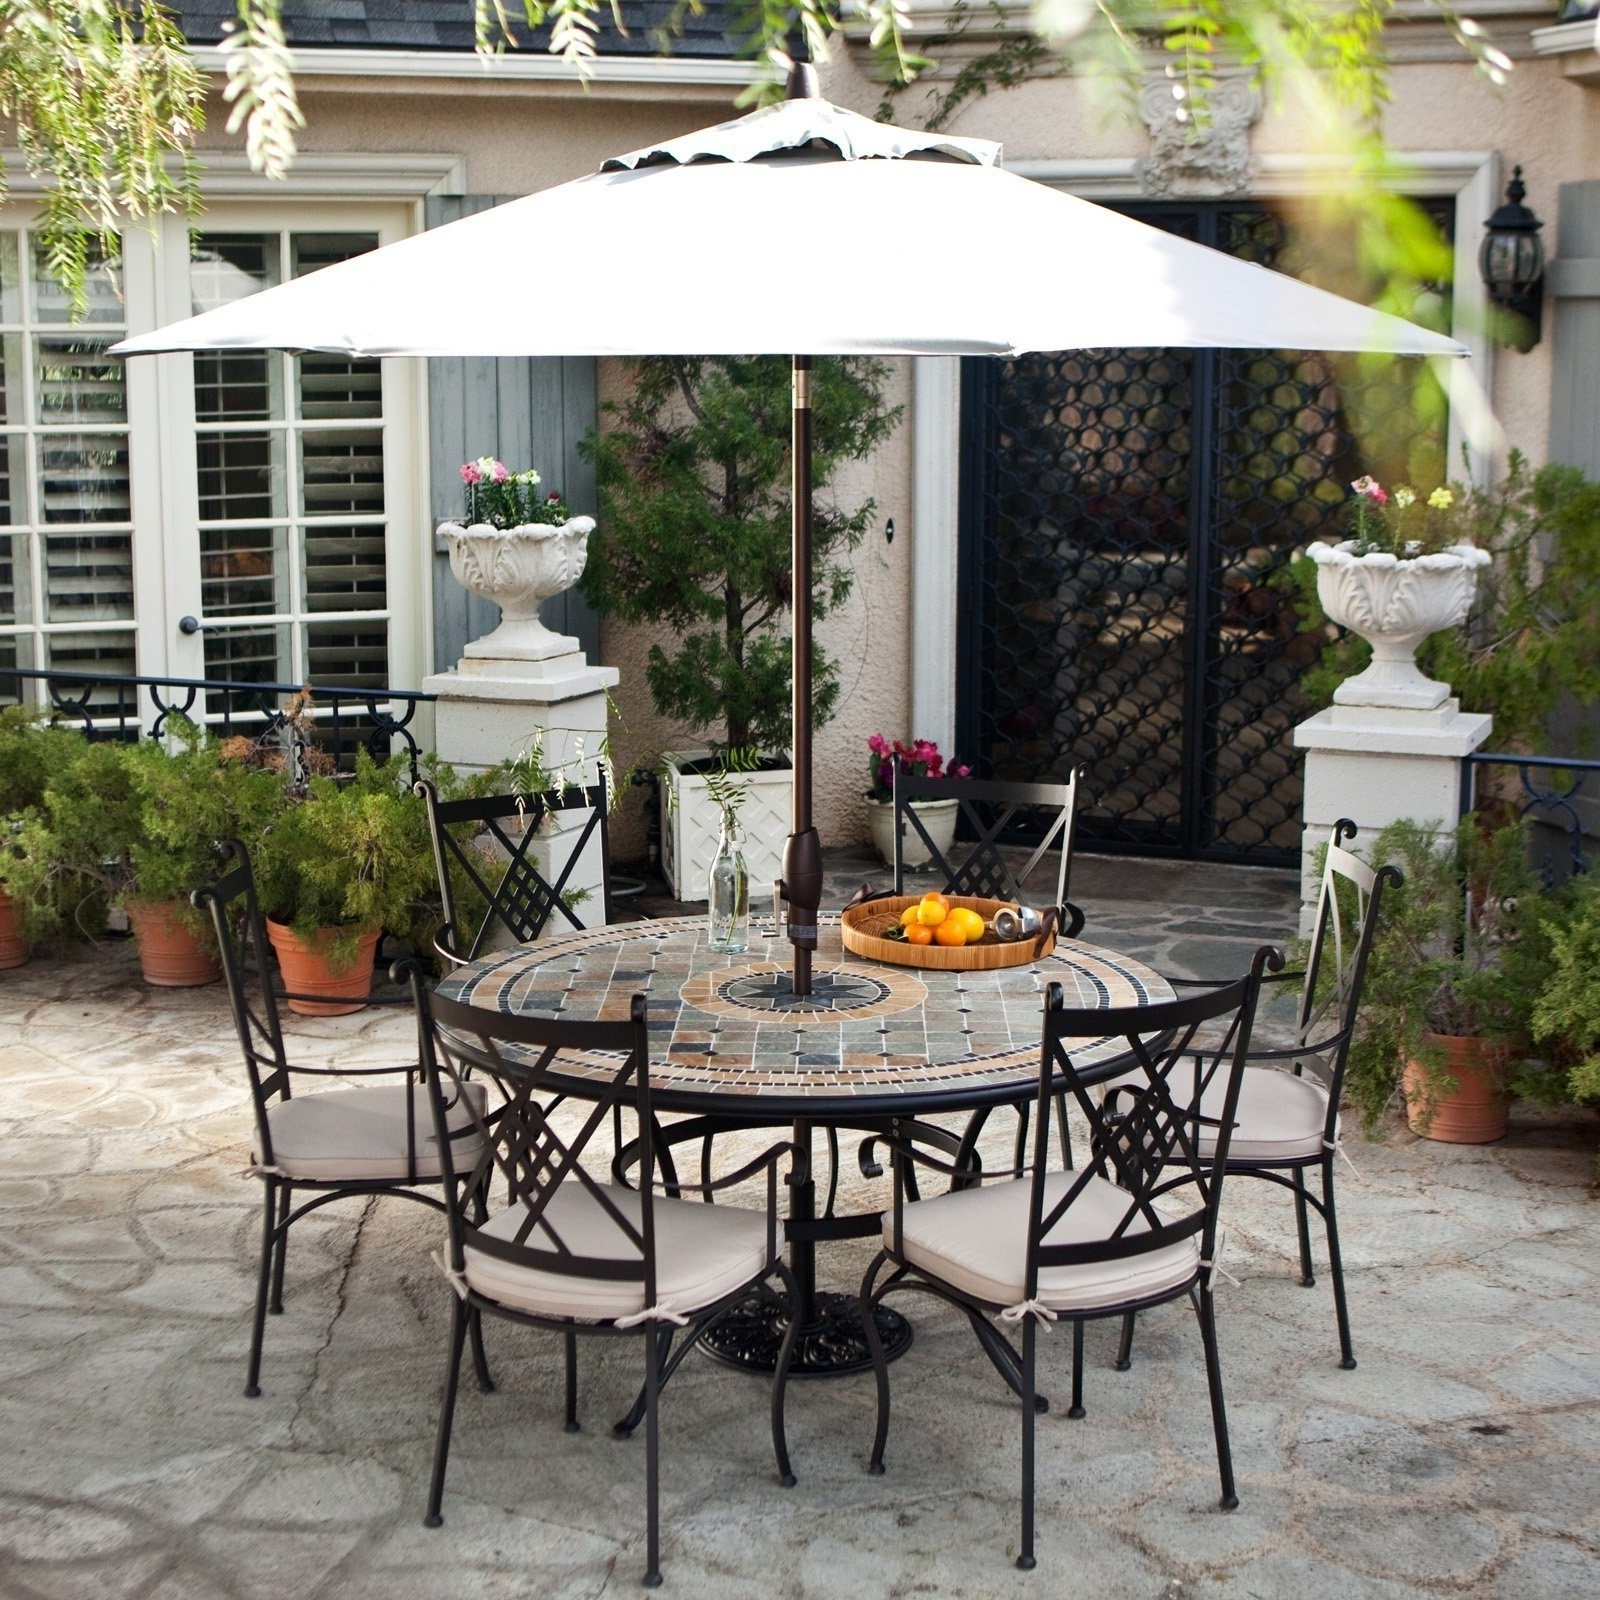 Most Recent Garden: Enchanting Outdoor Patio Decor Ideas With Patio Umbrellas With Regard To Small Patio Tables With Umbrellas (View 9 of 20)